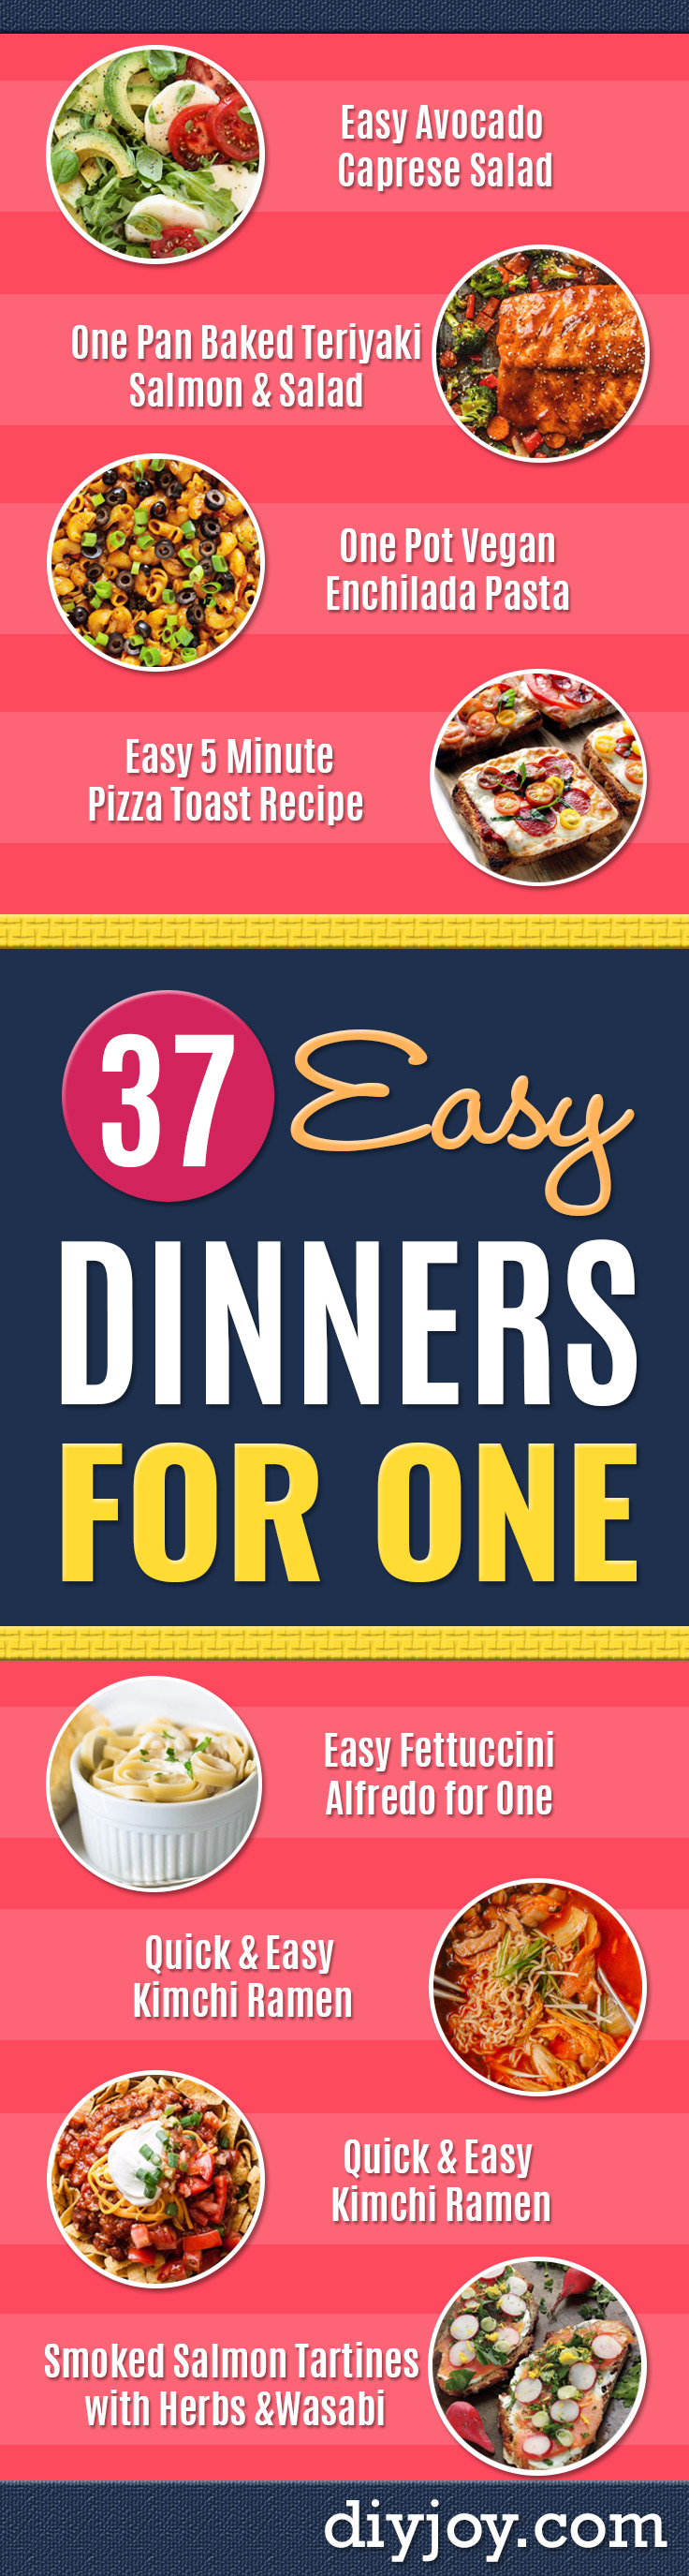 Easy Dinner Ideas for One - Quick, Fast and Simple Recipes to Make for a Single Person - Freeze and Make Ahead Dinner Recipe Tips for Best Weeknight Dinners for Singles - Chicken, Fish, Vegetable, No Bake and Vegetarian Options - Crockpot, Microwave, Healthy, Lowfat Options http://diyjoy.com/easy-dinners-for-one